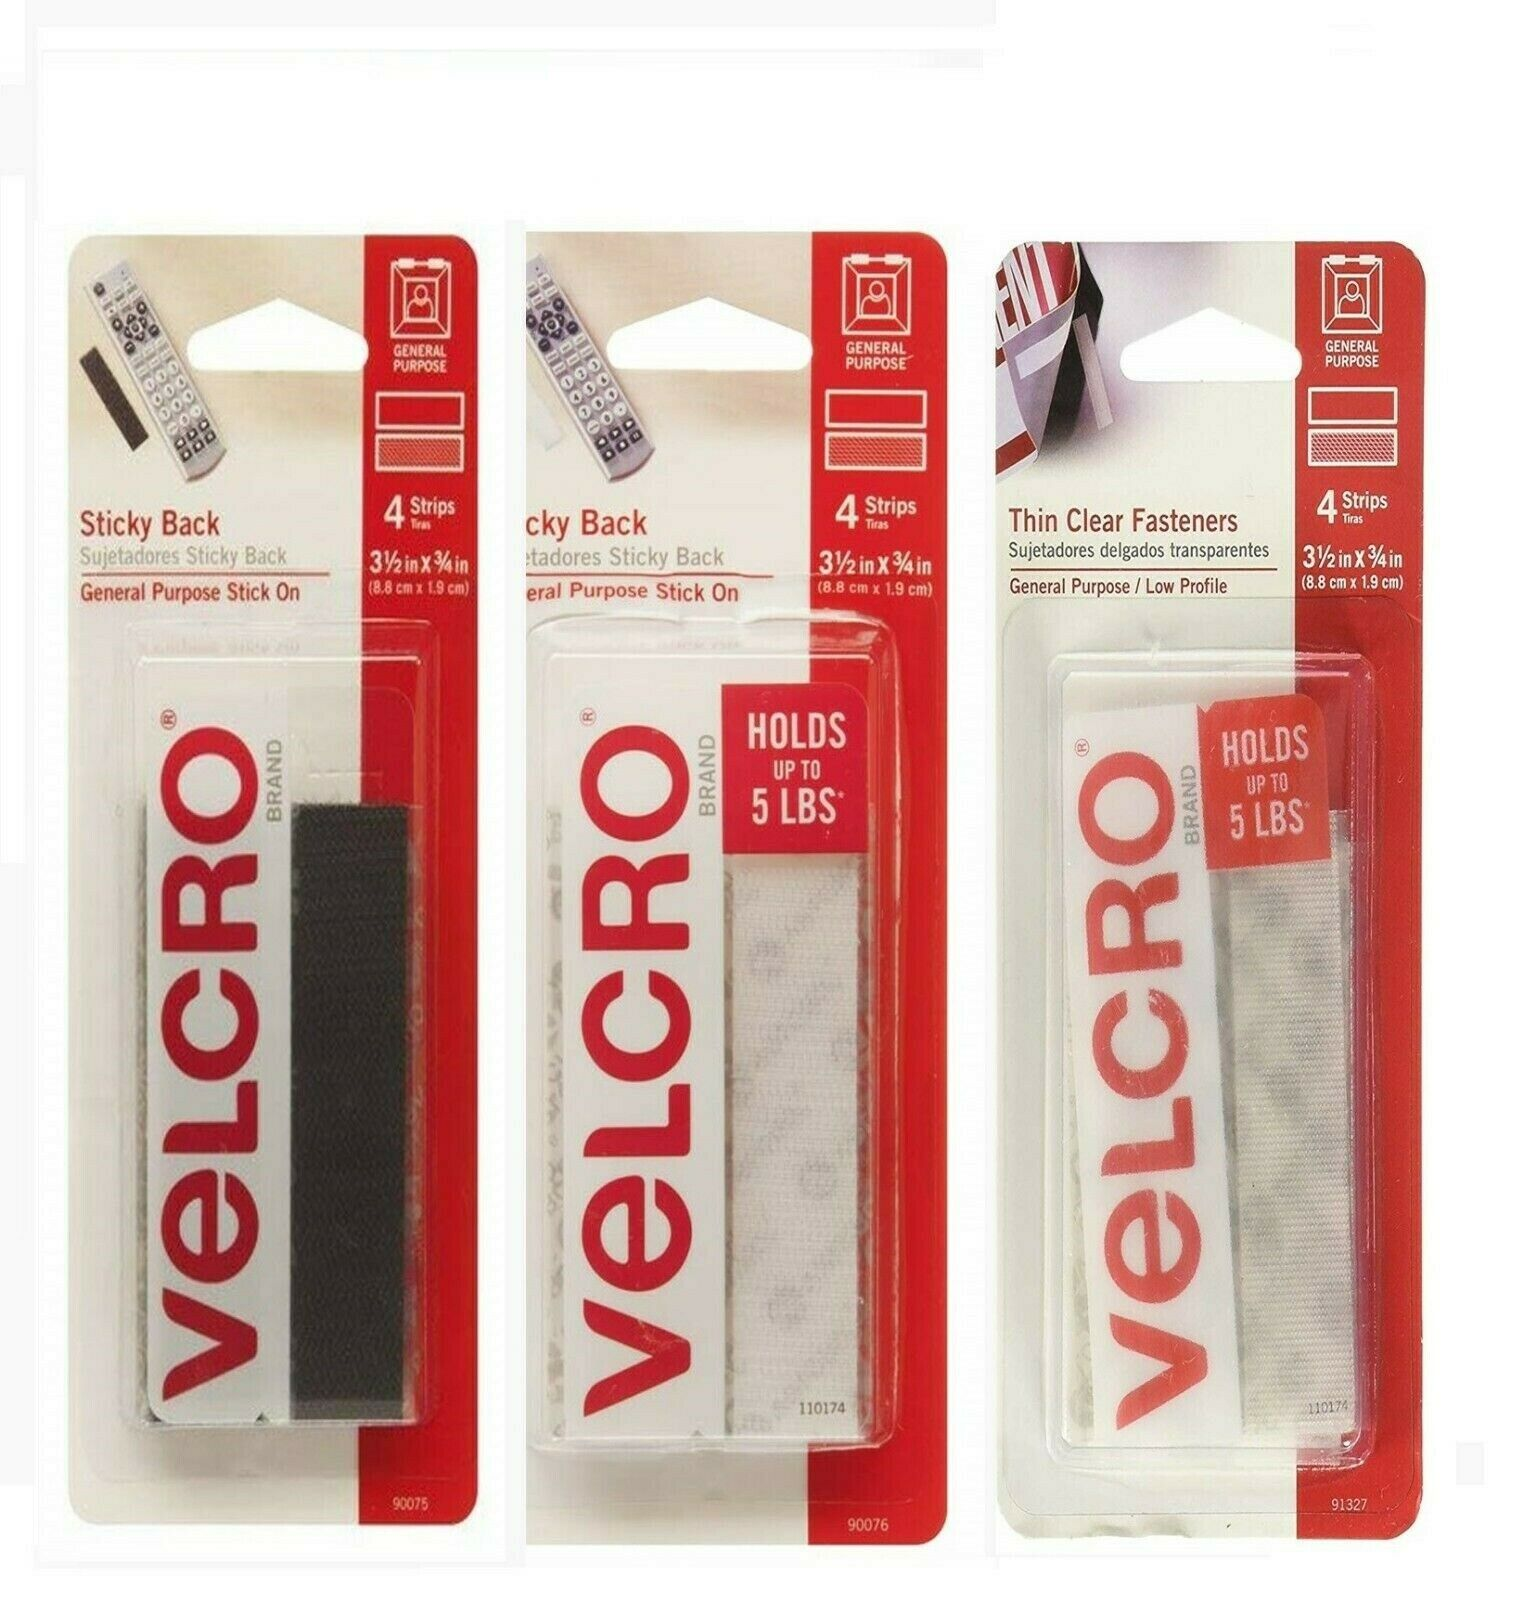 Sticky Back Tape 4 Pack VELCRO Peel & Stick Adhesive Hook Lo